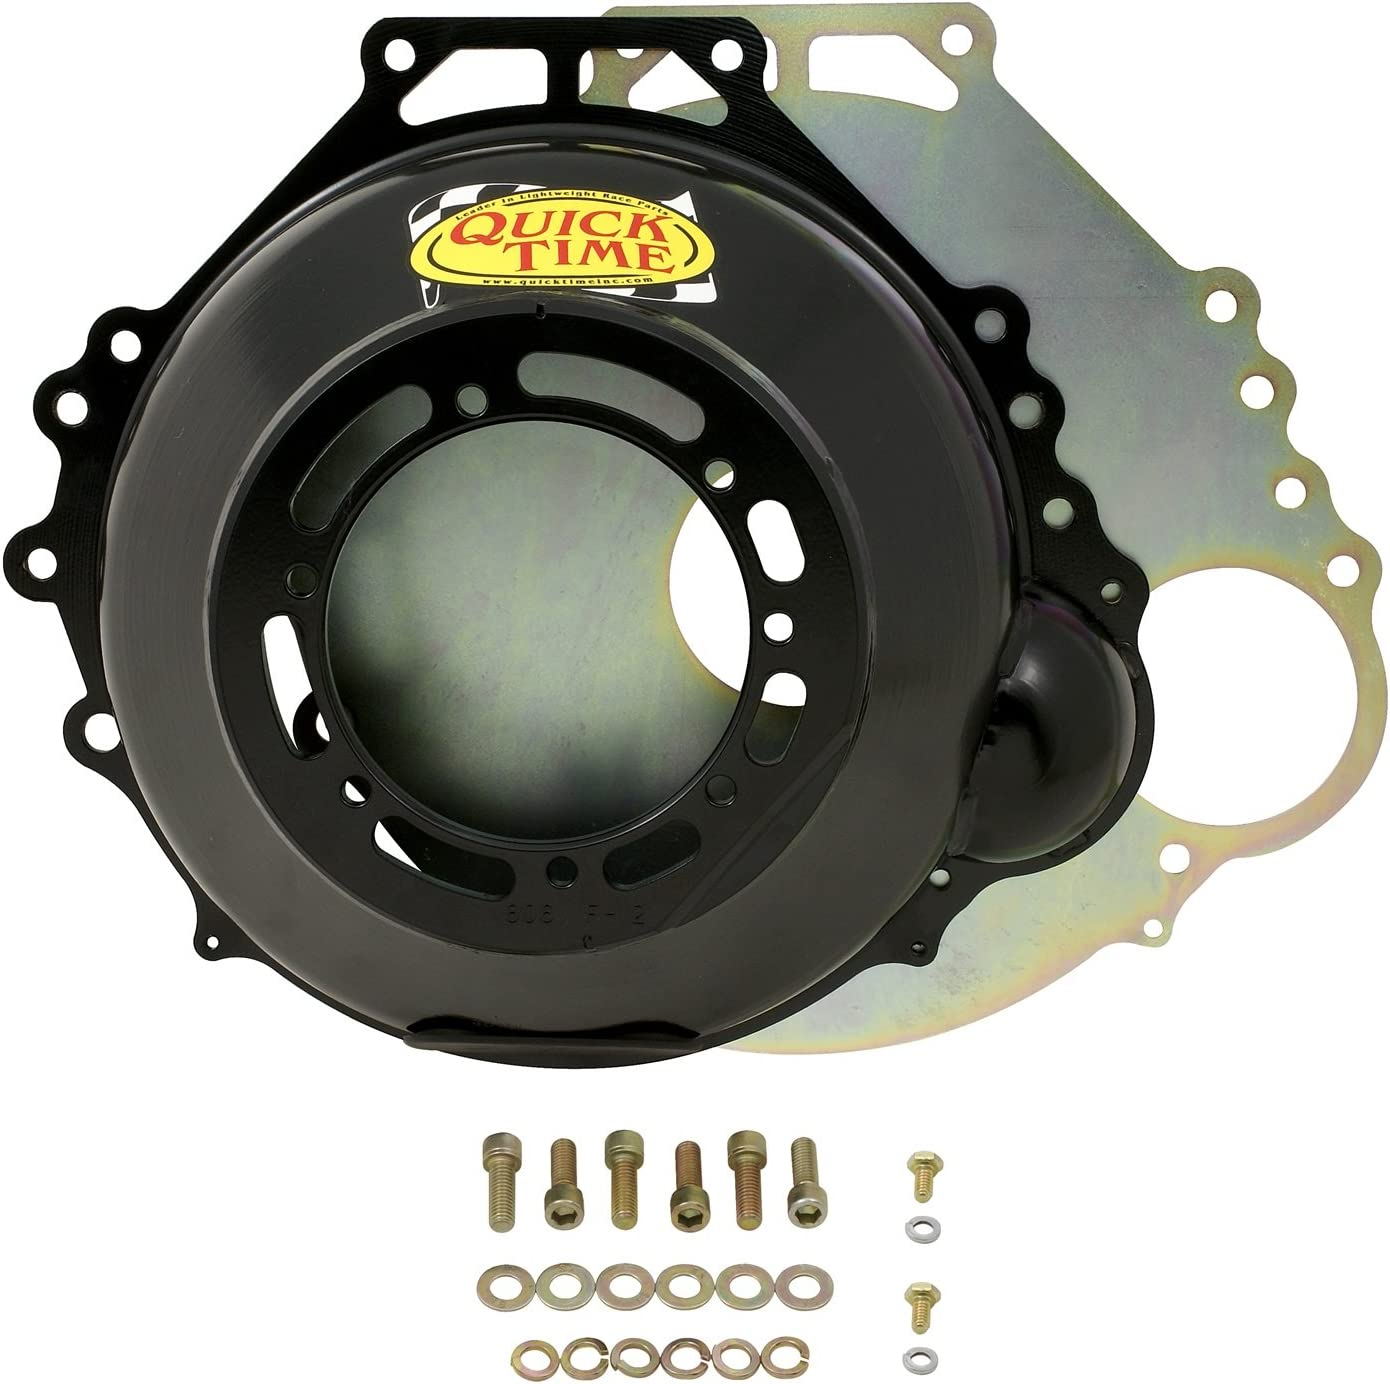 Ford Small Block 5.0L//5.8L Engine to C4 Transmission Bellhousing RM-6061 QuickTime